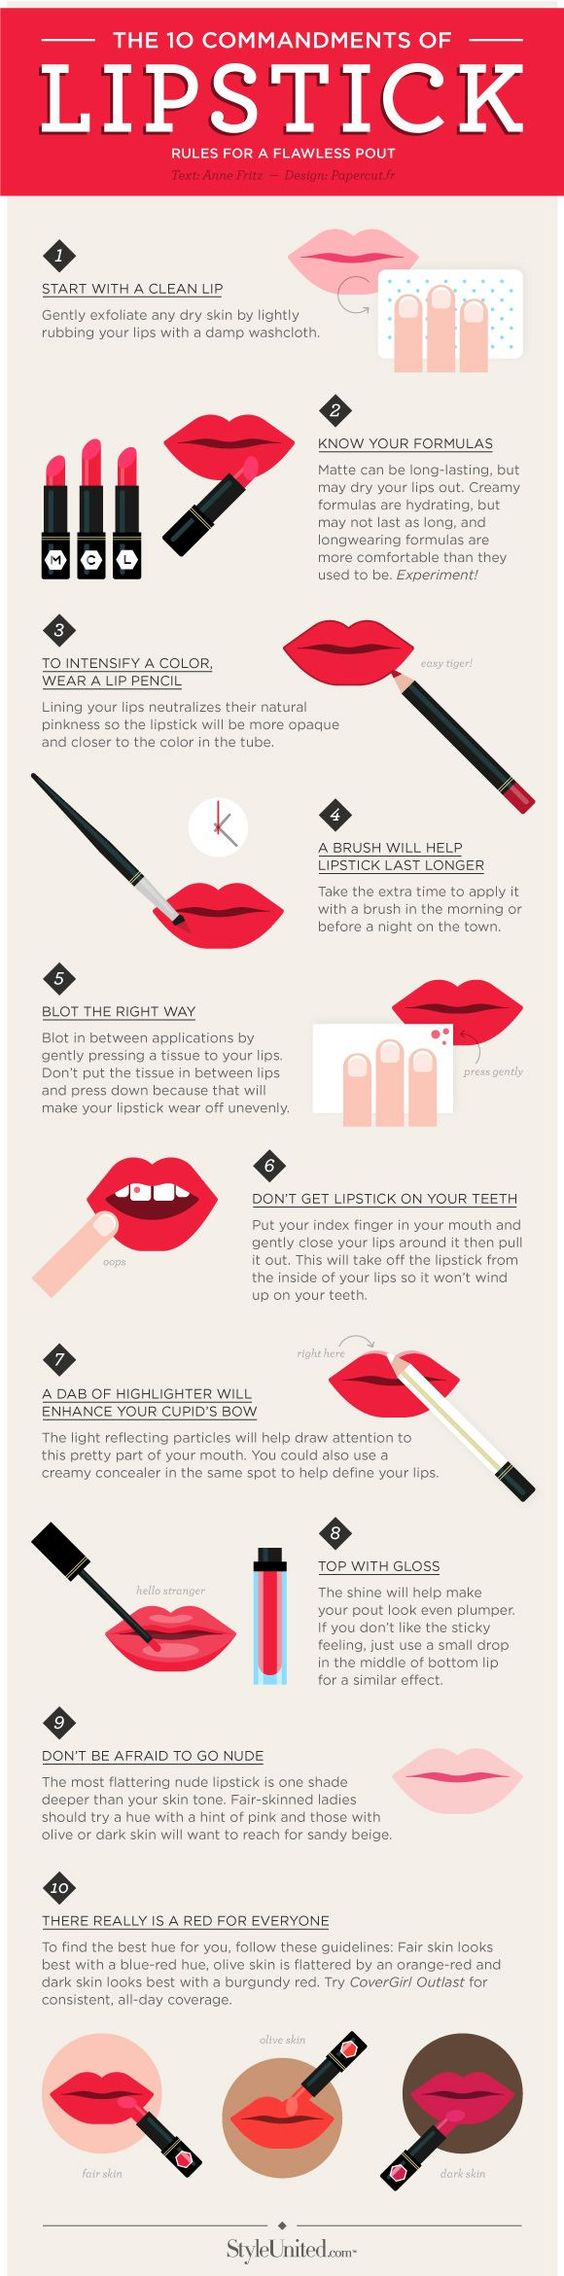 10 Rules Of Applying Lipstick For A Flawless Pout.